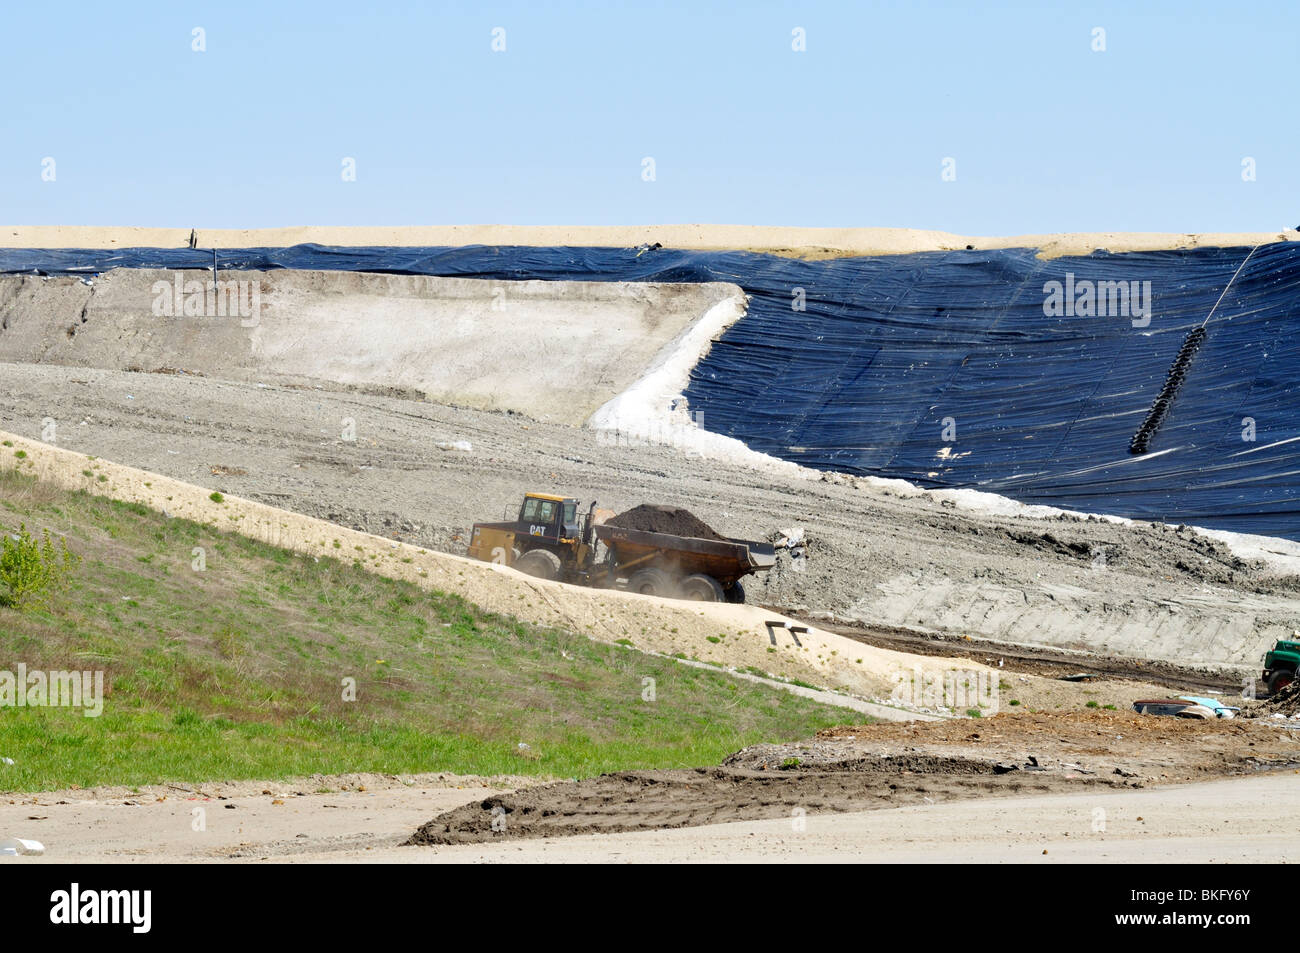 Closed full area of a waste management landfill being capped in Bourne, Cape Cod Massachusetts USA - Stock Image